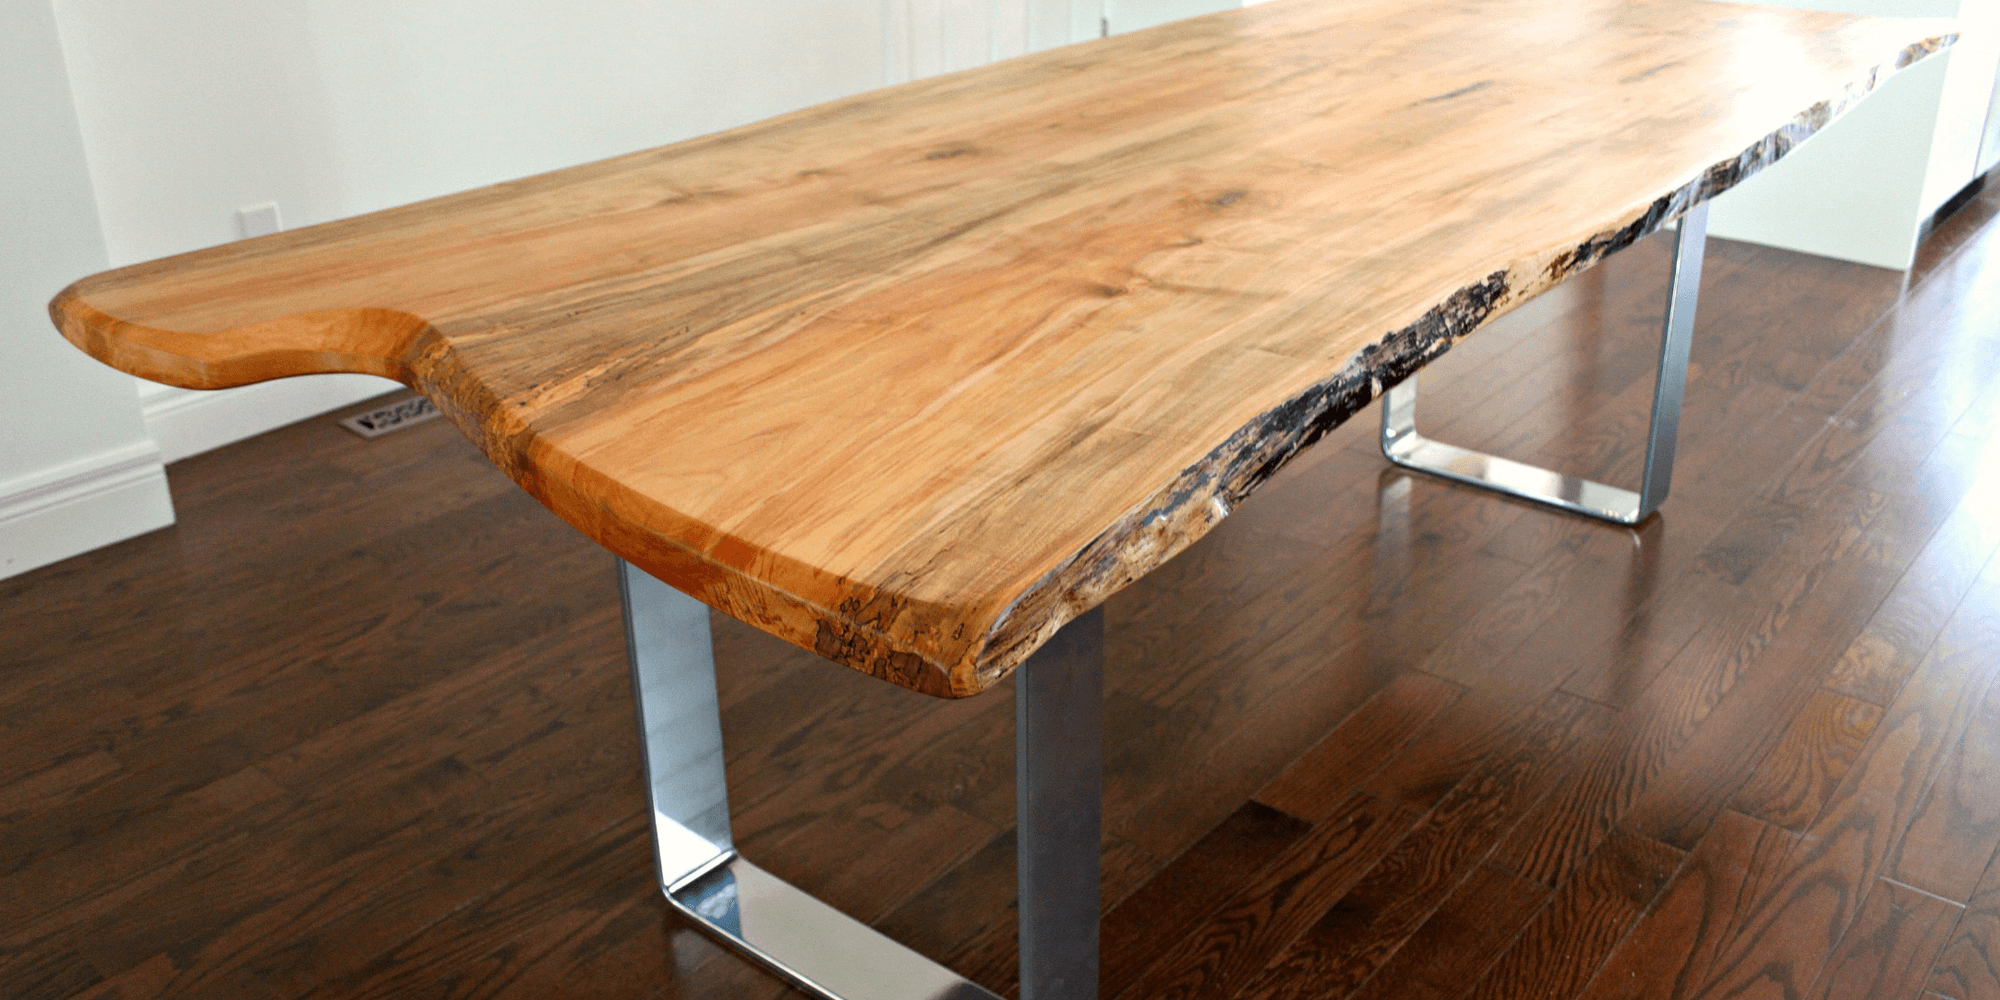 Walnut Finish Live Edge Wood Contemporary Dining Tables For Trendy Home – Living Wood Design Toronto & Muskoka Ontario Canada (View 22 of 30)